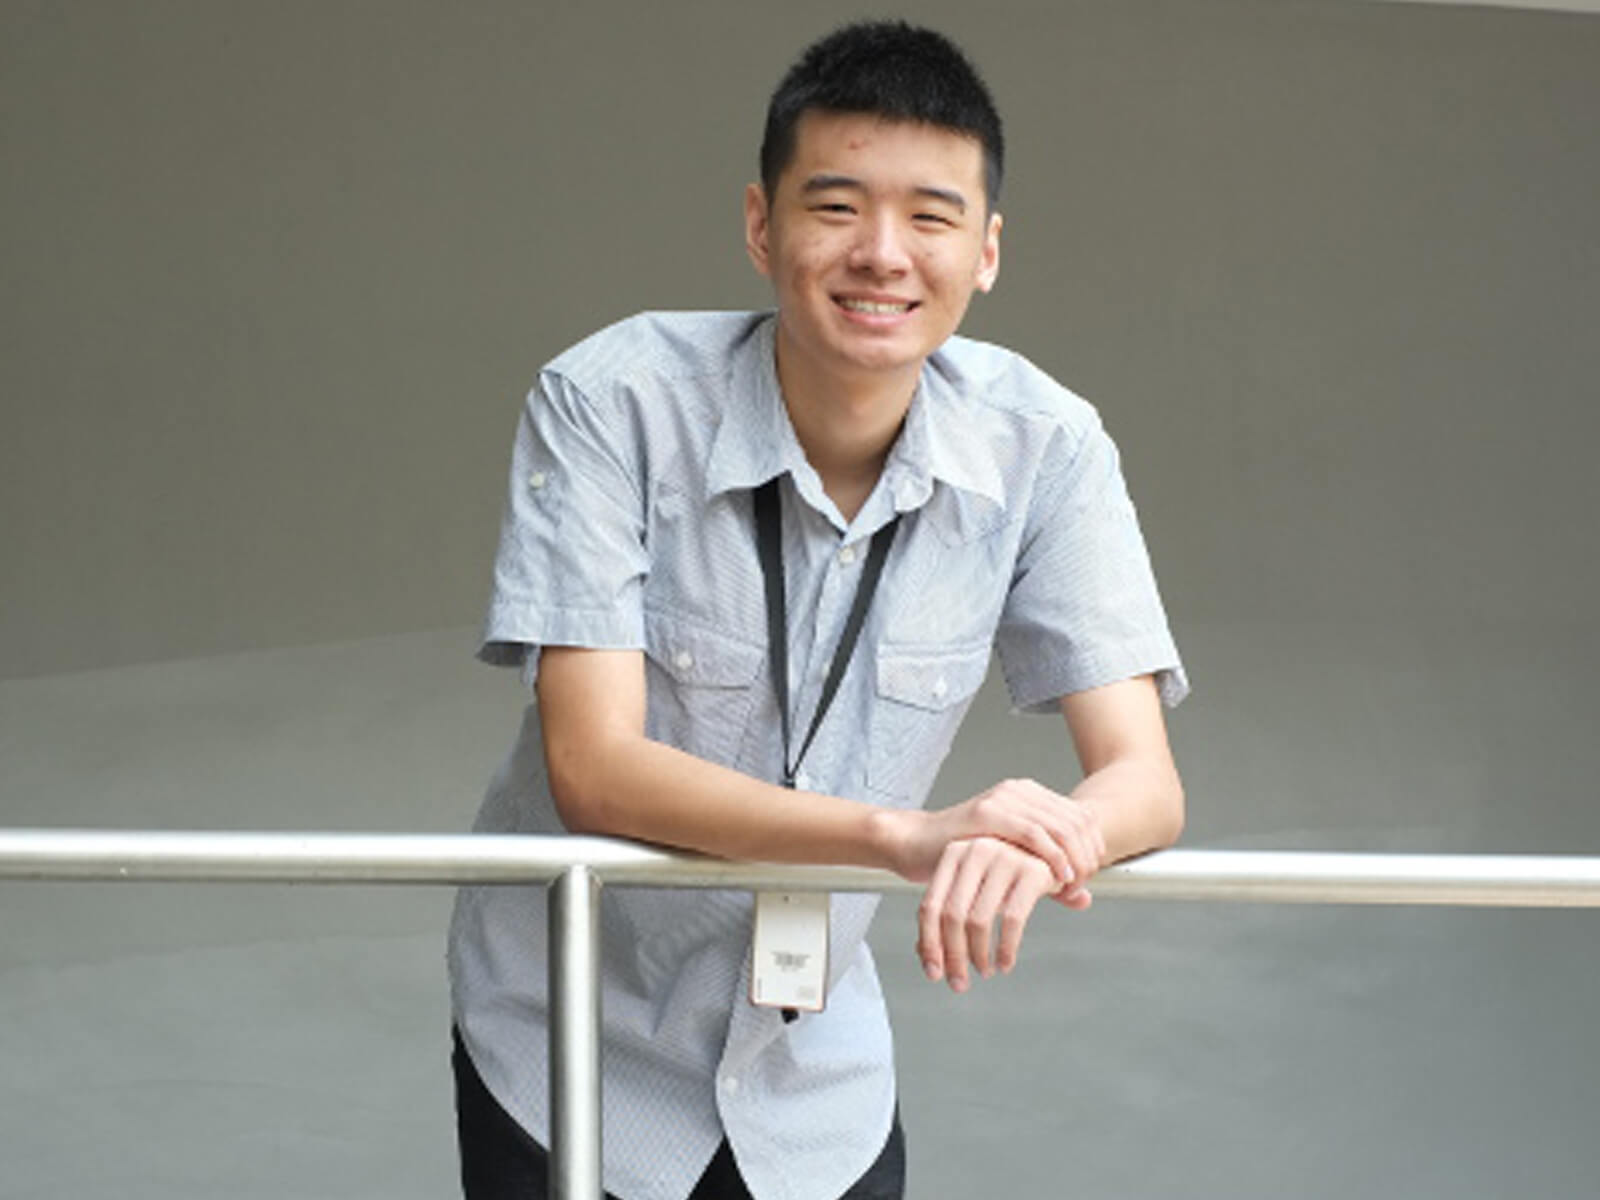 DigiPen (Singapore) student Tan Yao Wei leans on a metal railing posing for a photo